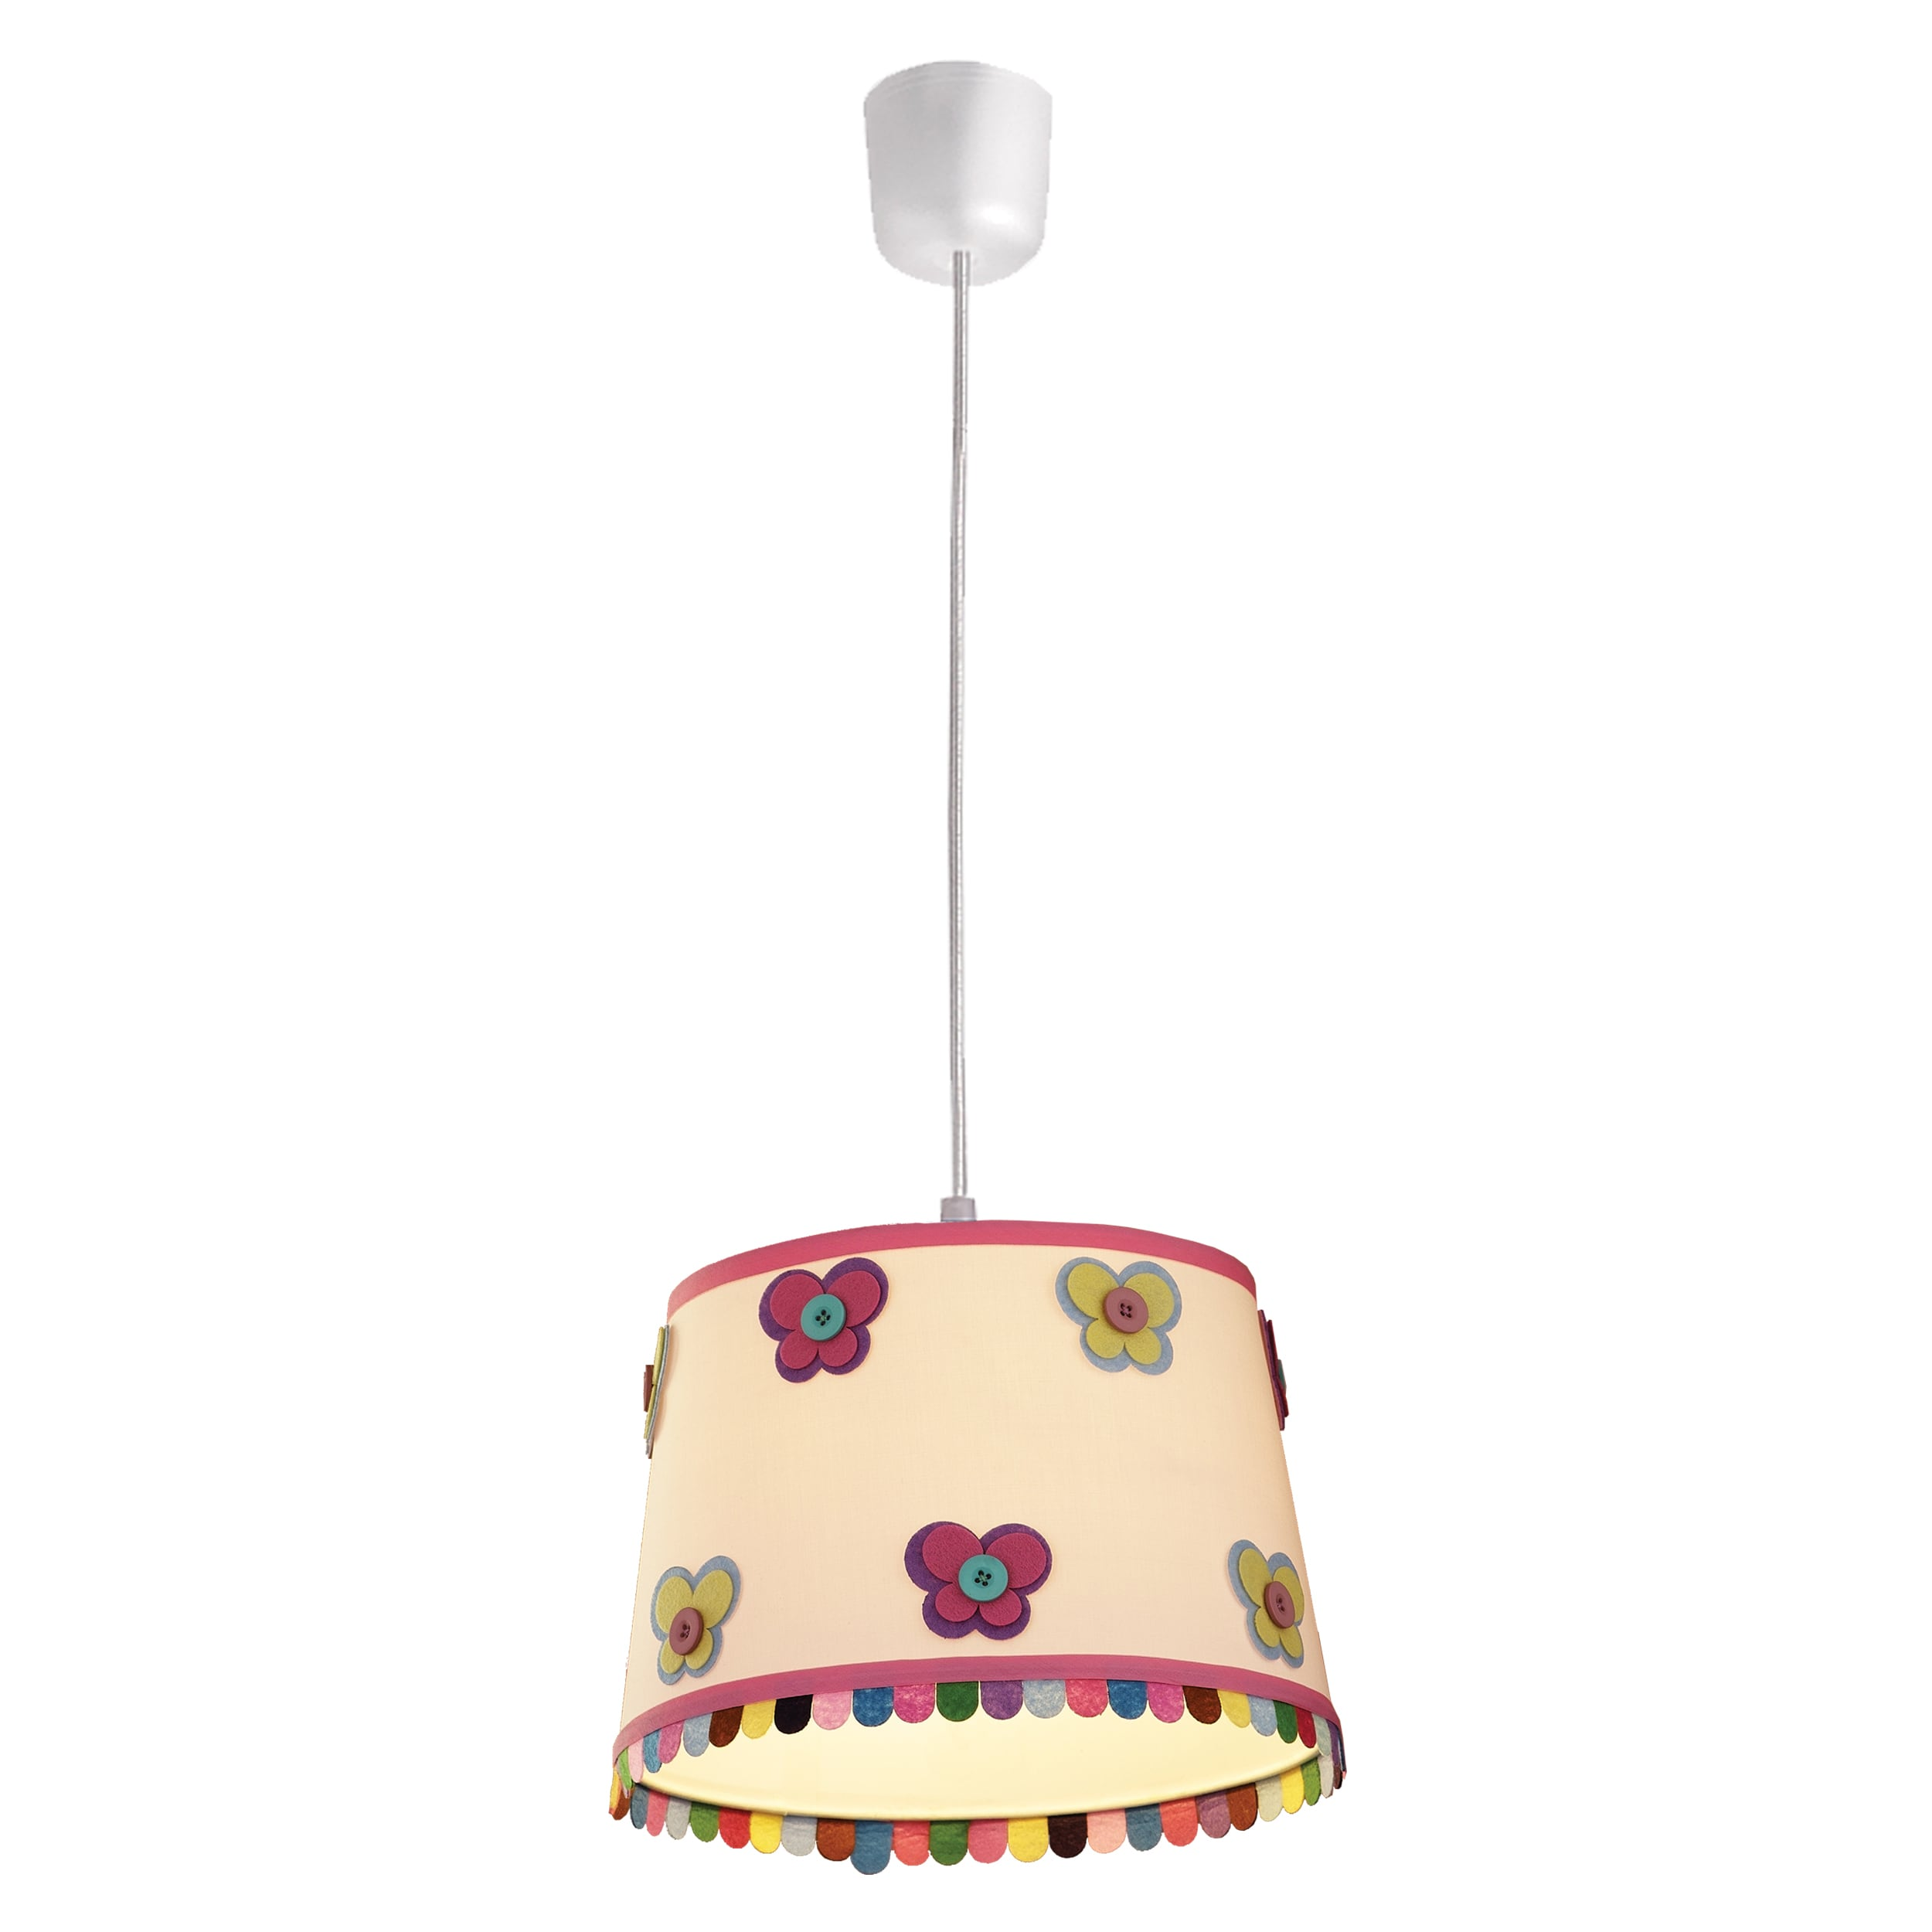 Hanging lamp for a child. Butterfly Lampshade